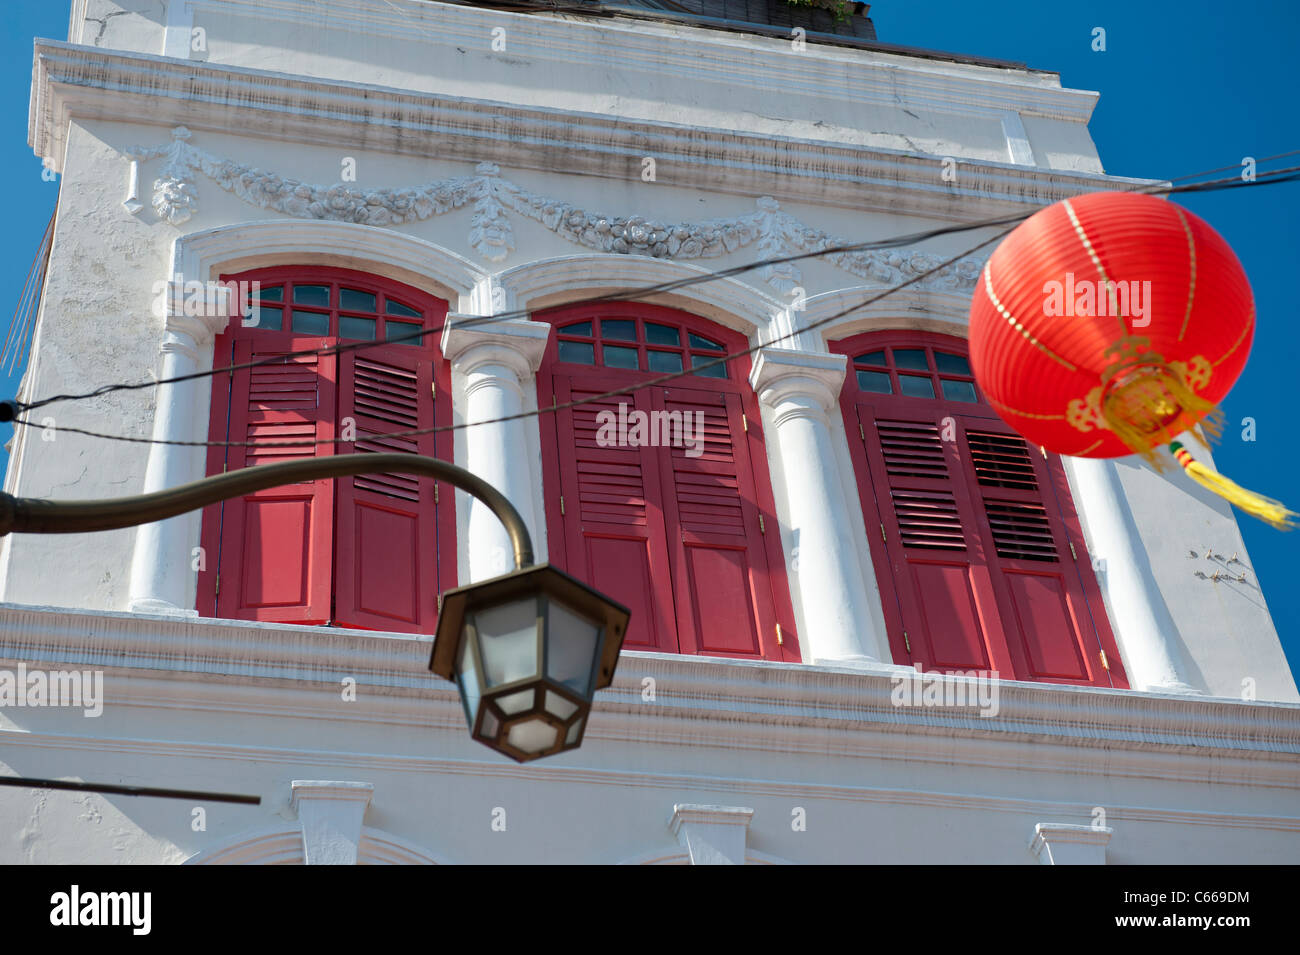 Colorful Shophouse in Chinatown, Singapore - Stock Image